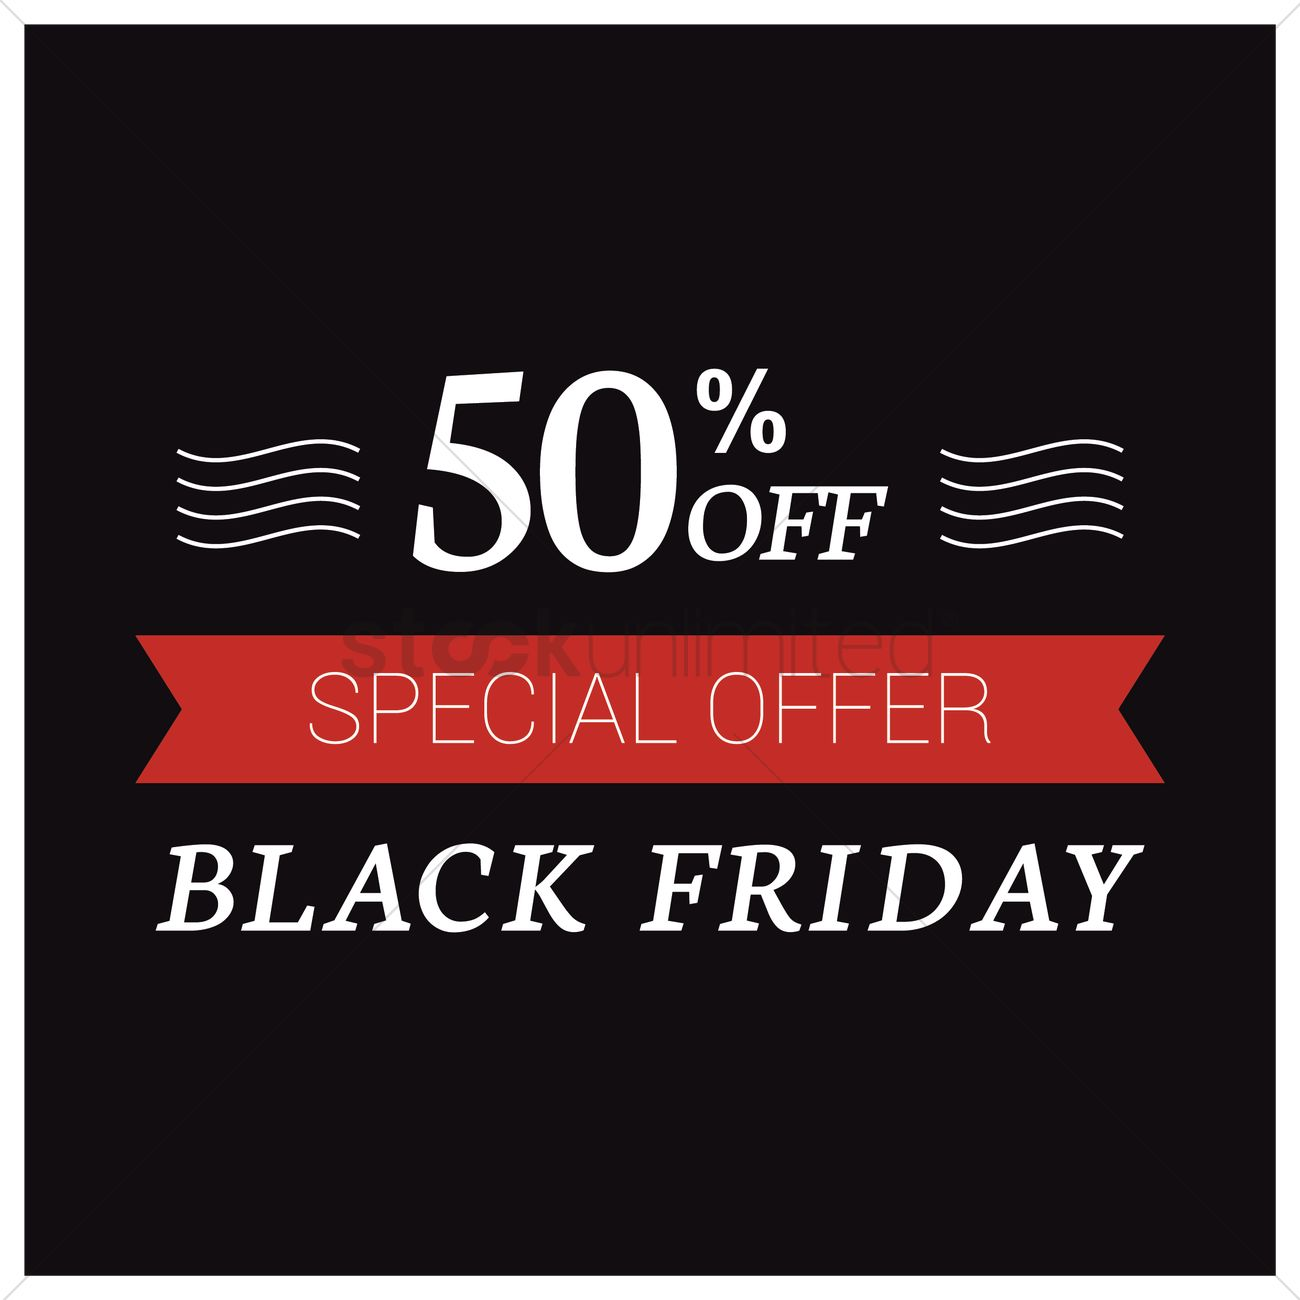 Black friday sale wallpaper Vector Image   1583541 StockUnlimited 1300x1300